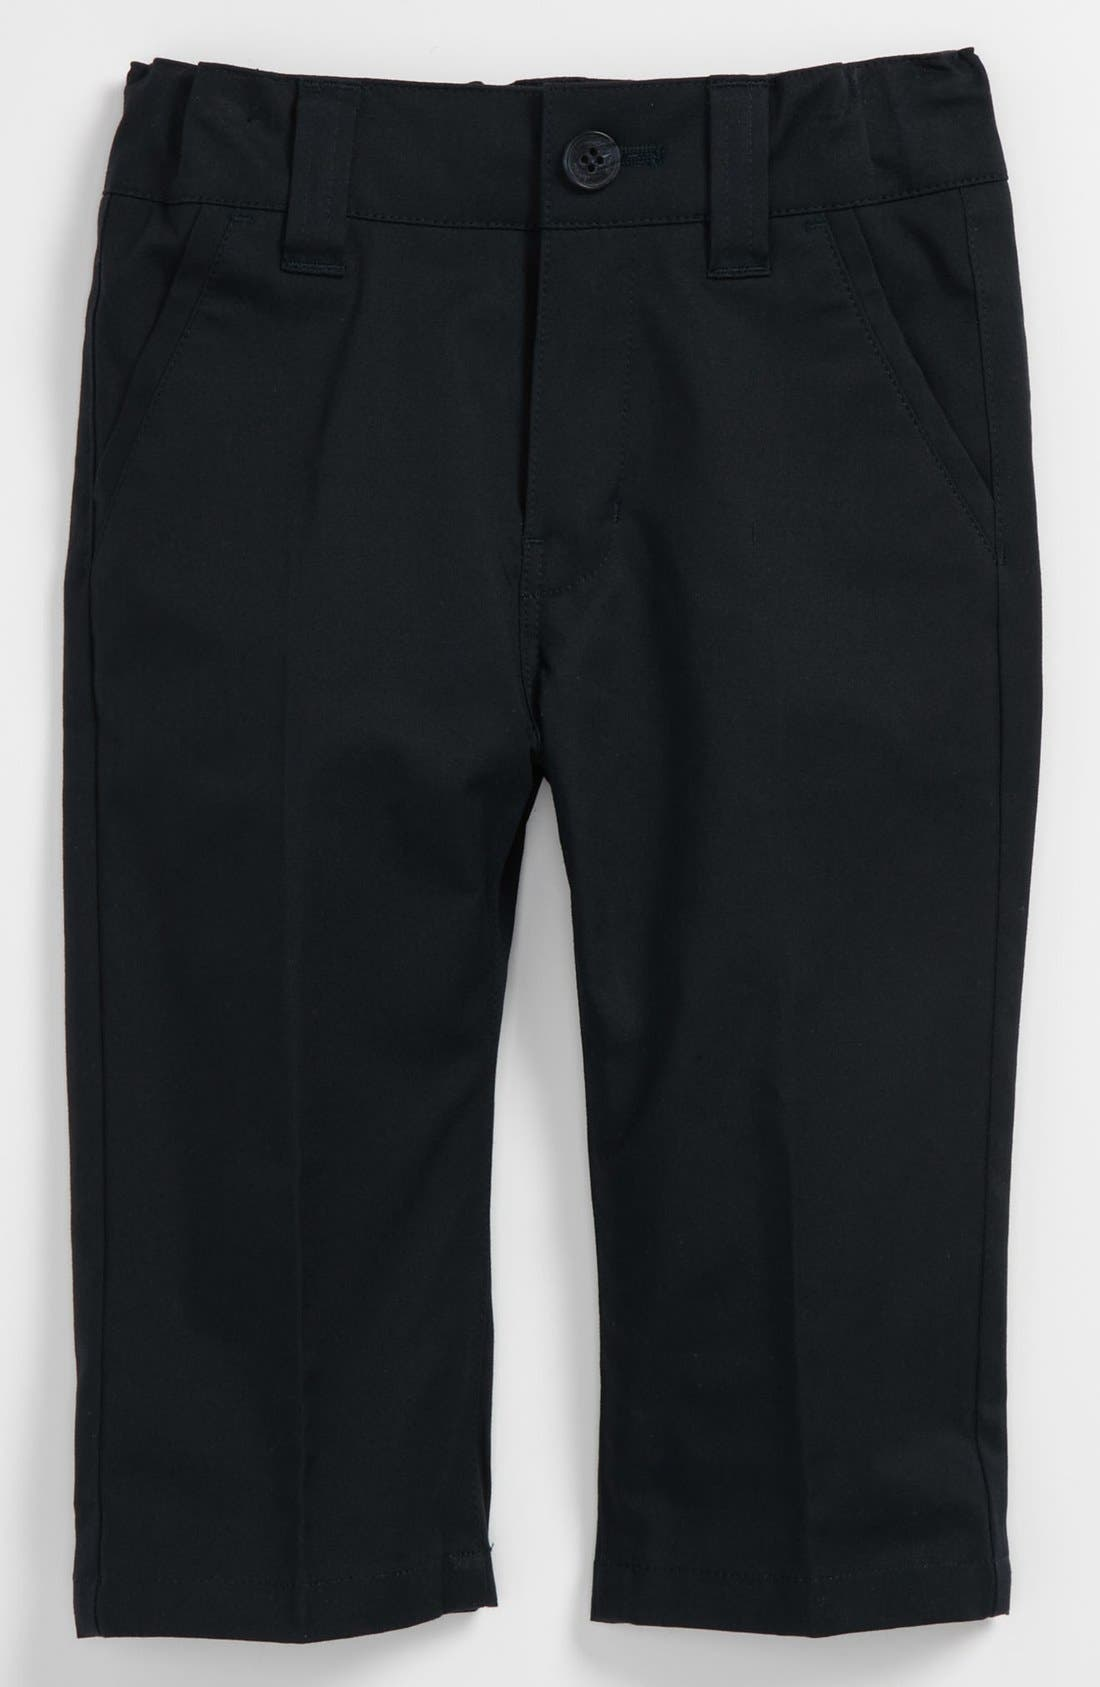 Alternate Image 1 Selected - BOSS Kidswear Twill Pants (Baby)